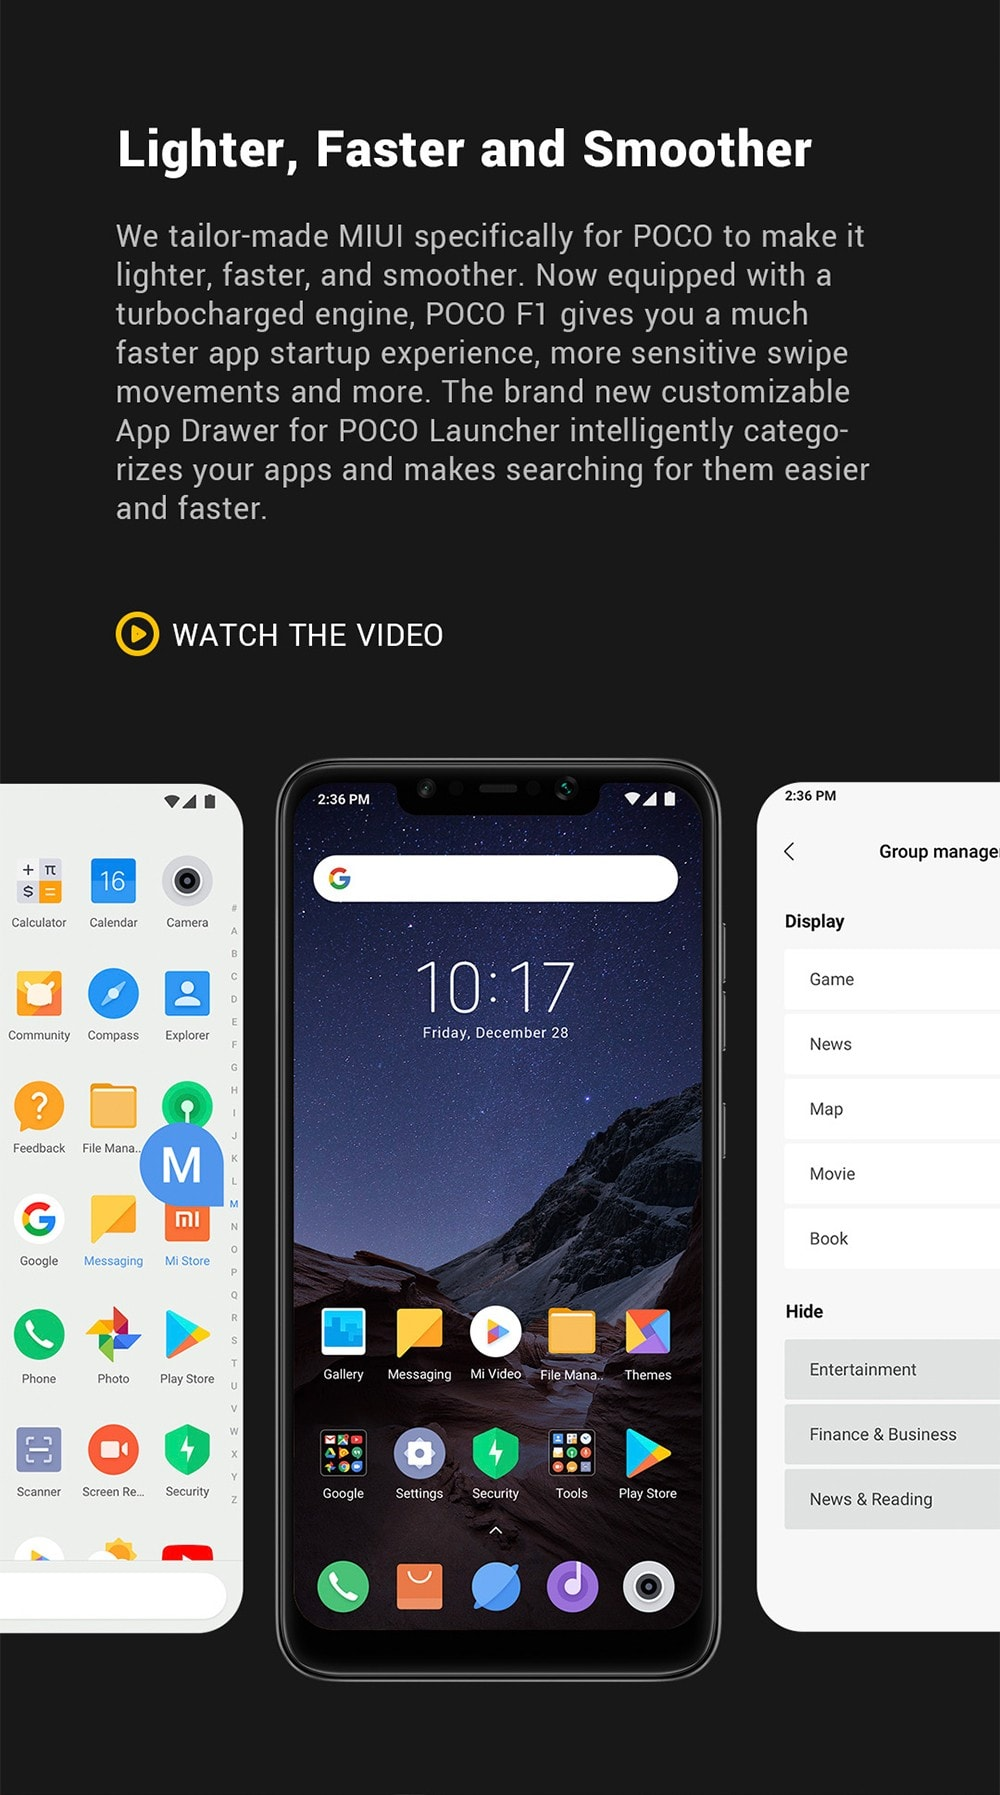 Xiaomi Pocophone F1 4G Phablet 6.18 inch Android 8.1 Snapdragon 845 Octa Core 2.8GHz 6GB RAM 64GB ROM 20.0MP Front Camera Fingerprint Sensor 4000mAh (typ ) / 3900mAh (min) Built-in- Graphite Black